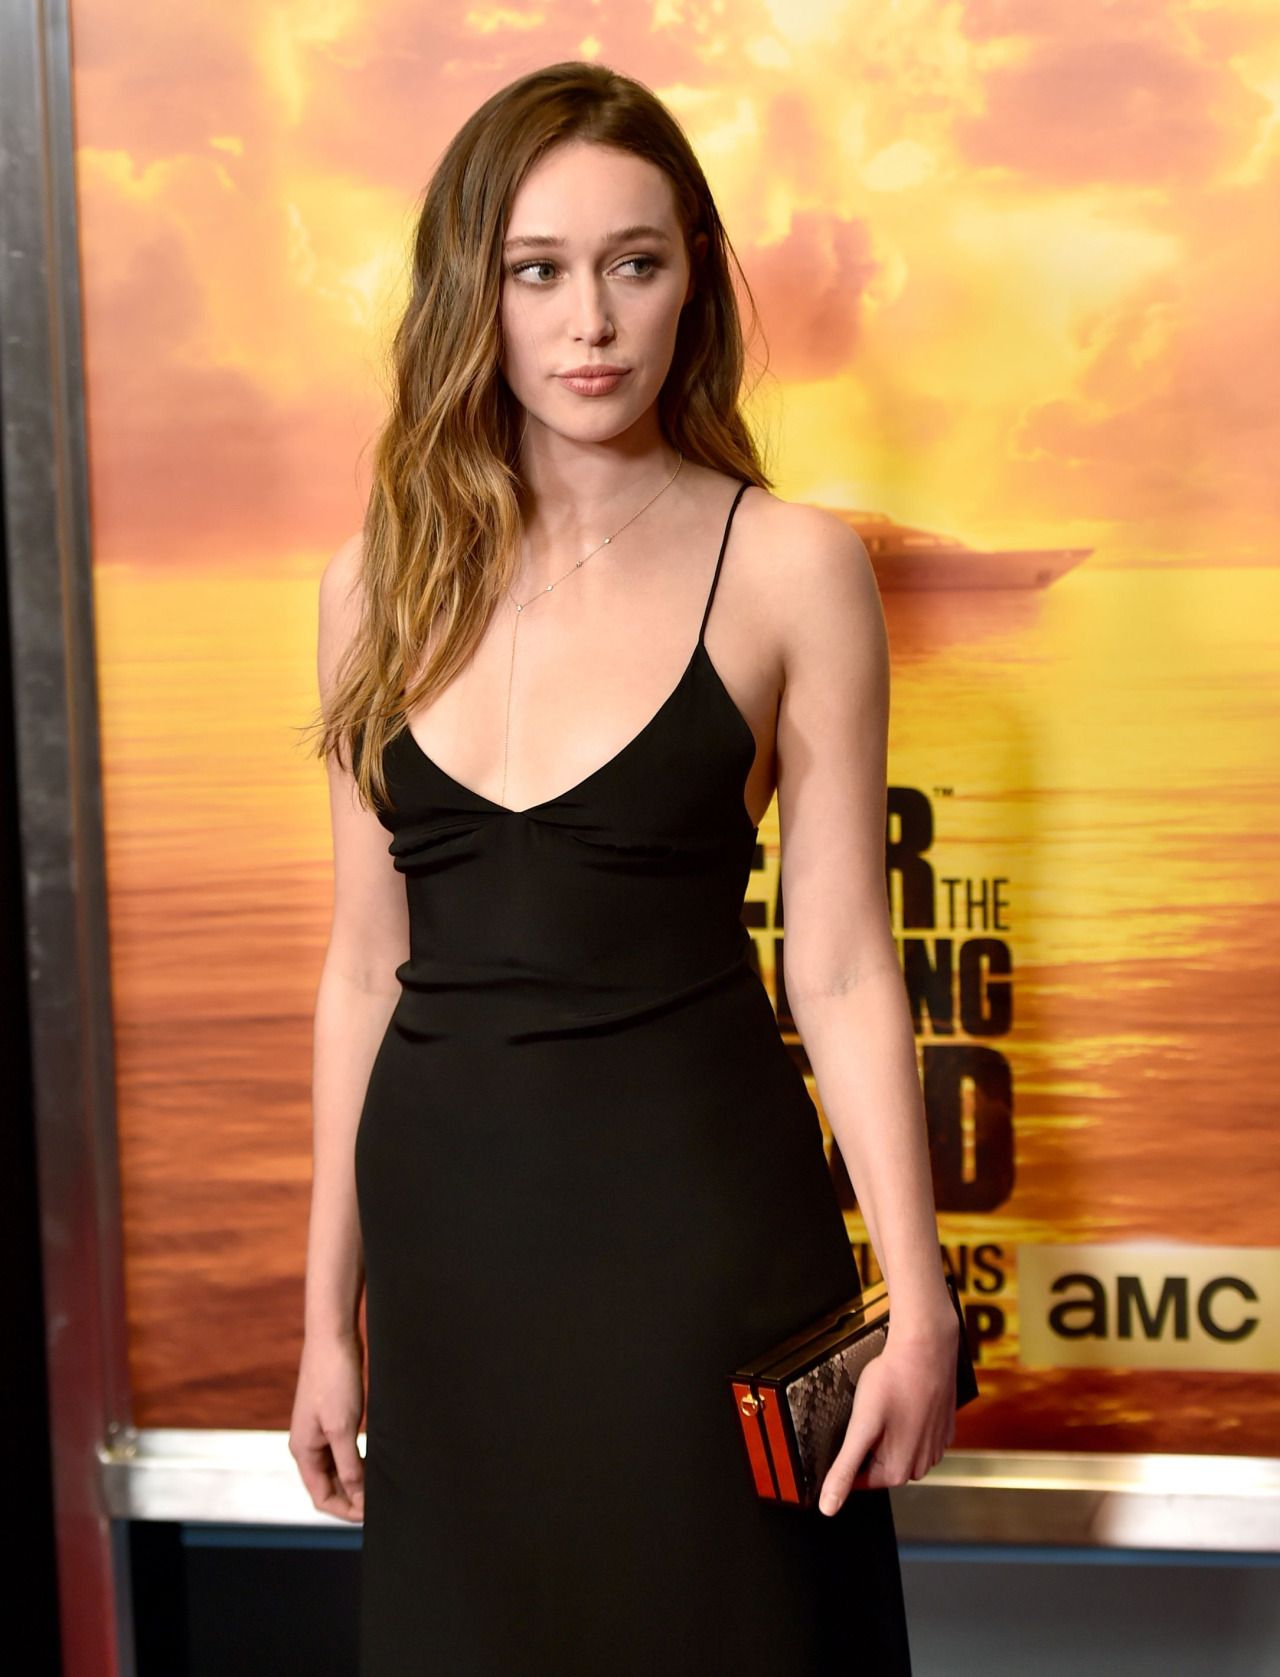 Alycia Debnam Carey Nackt 49 hot pictures of alycia debnam-carey which prove she is